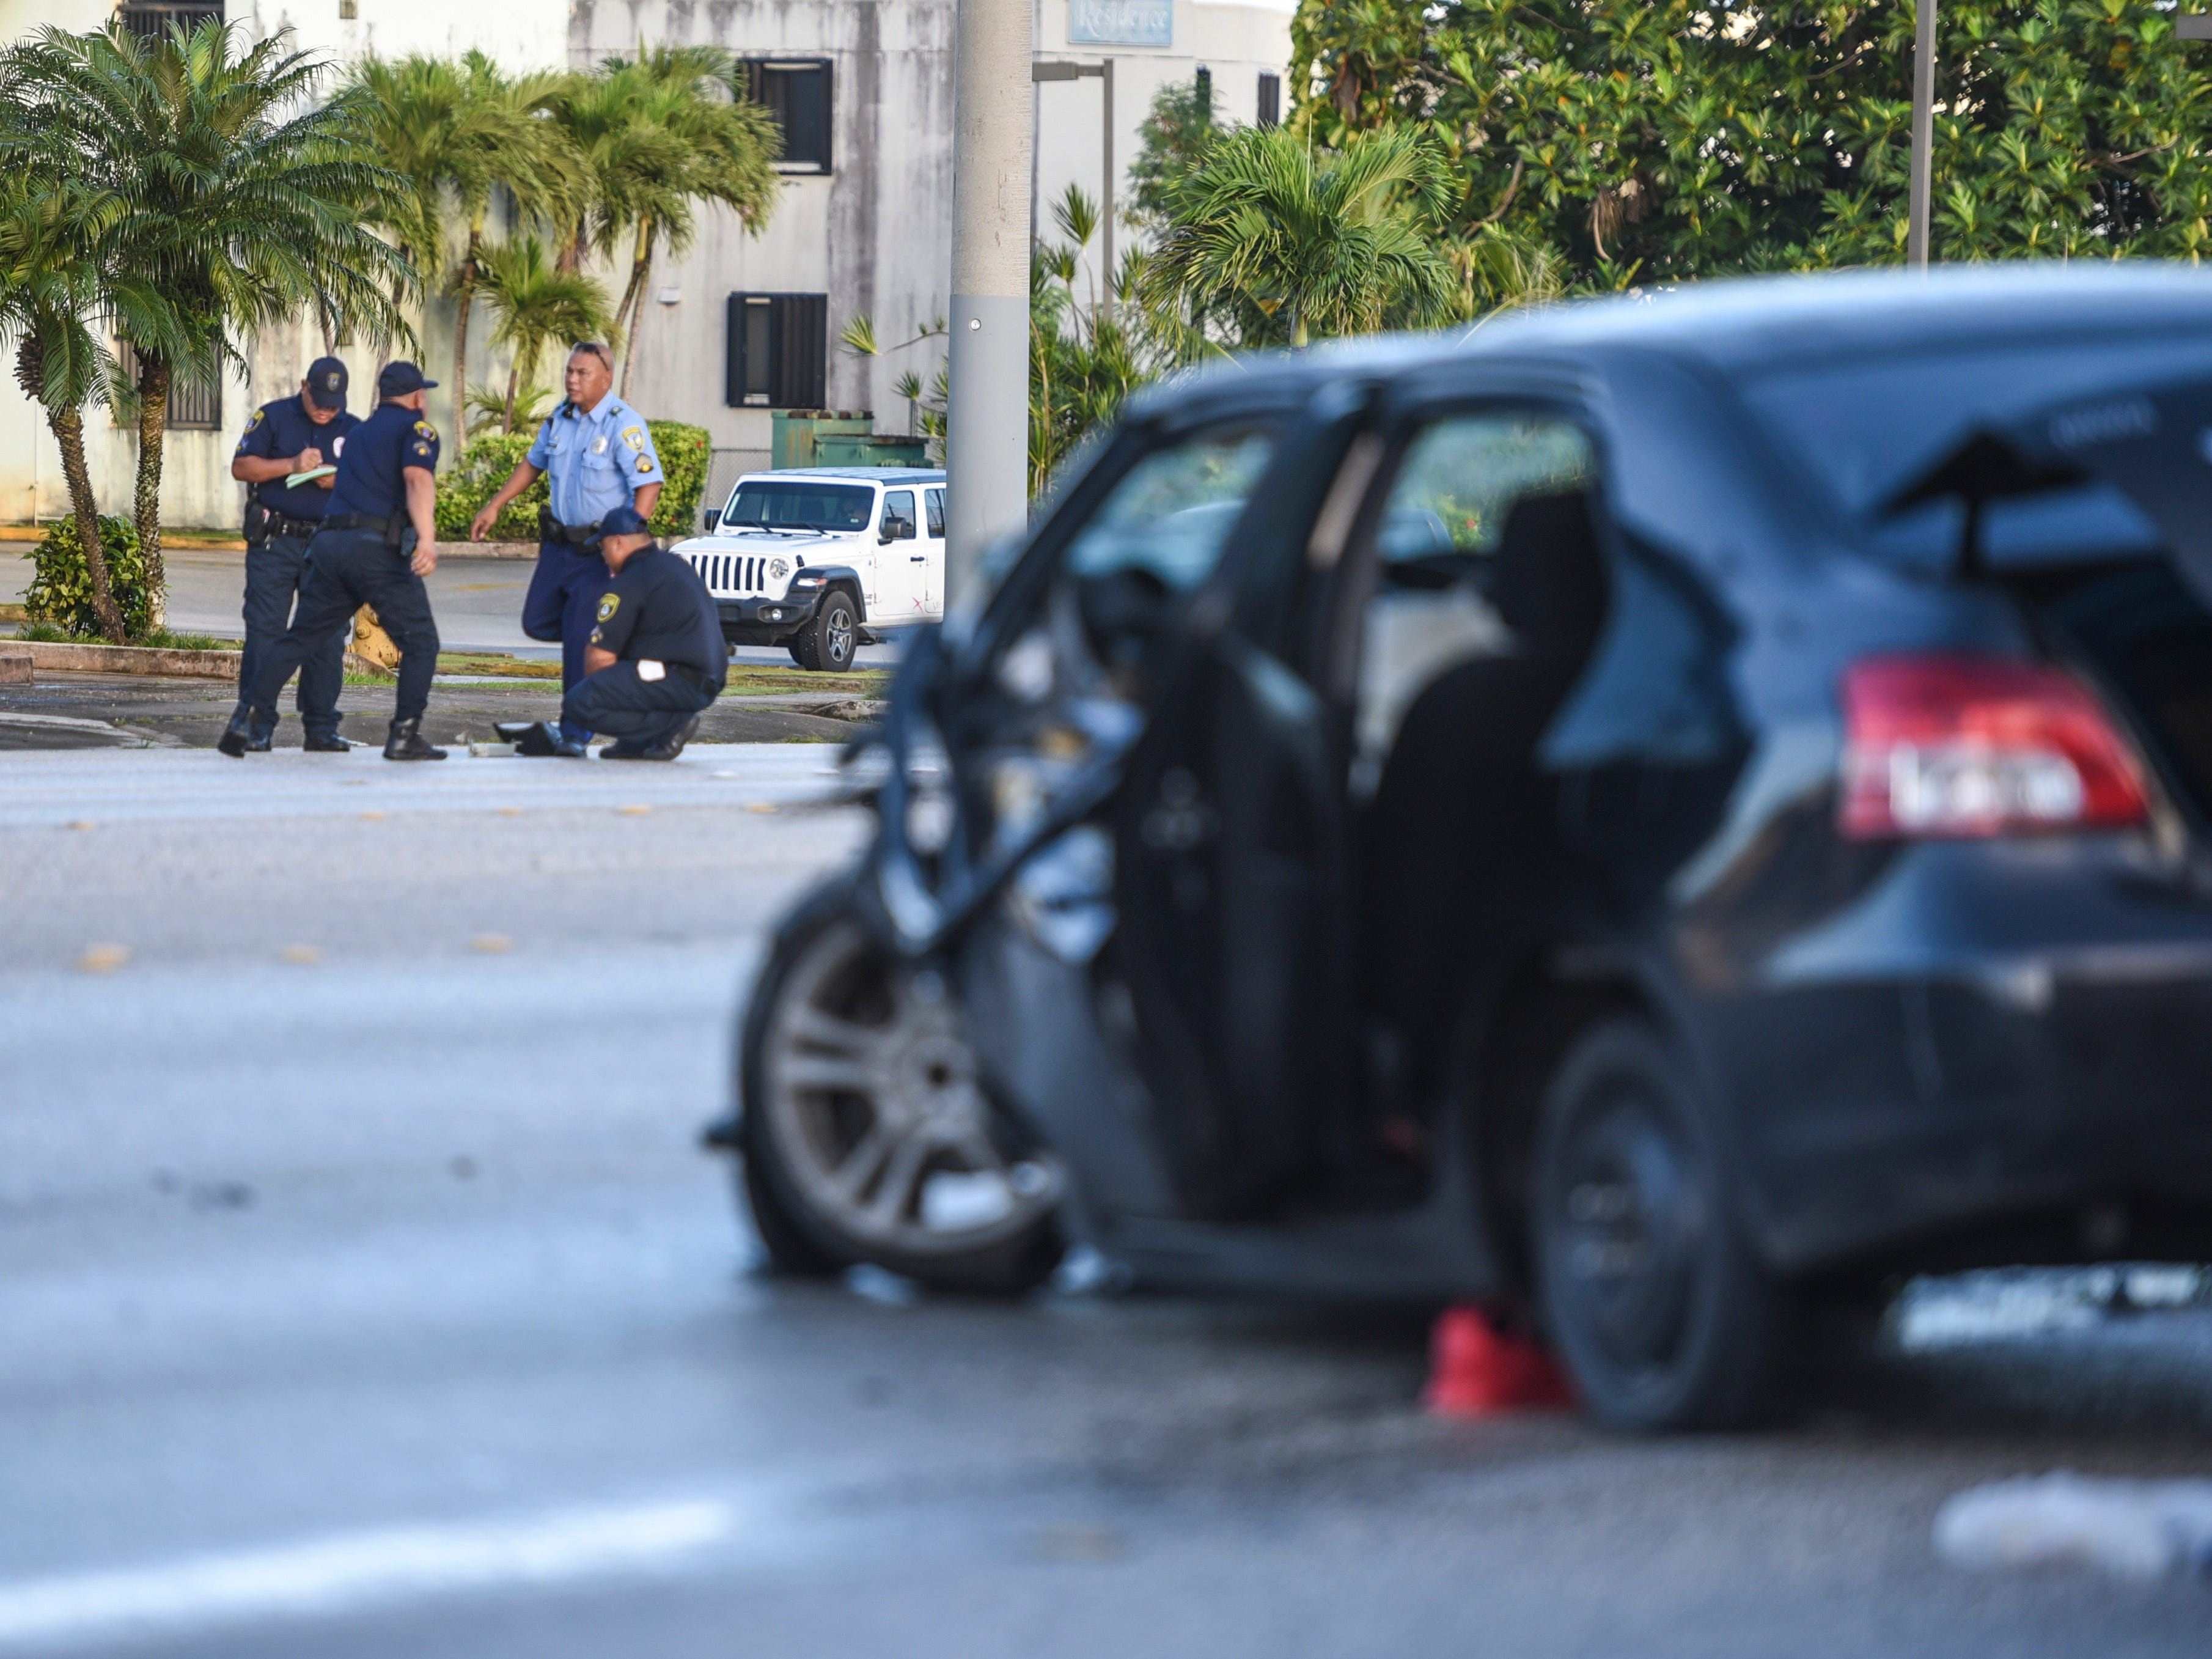 Officers with the Guam Police Department's Highway Patrol Division investigate a fatal auto-off roadway incident near the JNS Divers shop on Chalan San Antonio in Tamuning on Wednesday, Dec. 5, 2018. The accident claimed the life of the driver, who was the sole occupant, after the vehicle collided into a concrete utility pole on the side of the roadway. The man's death marks the 22nd fatality and the 20th fatal crash that has occured this year.